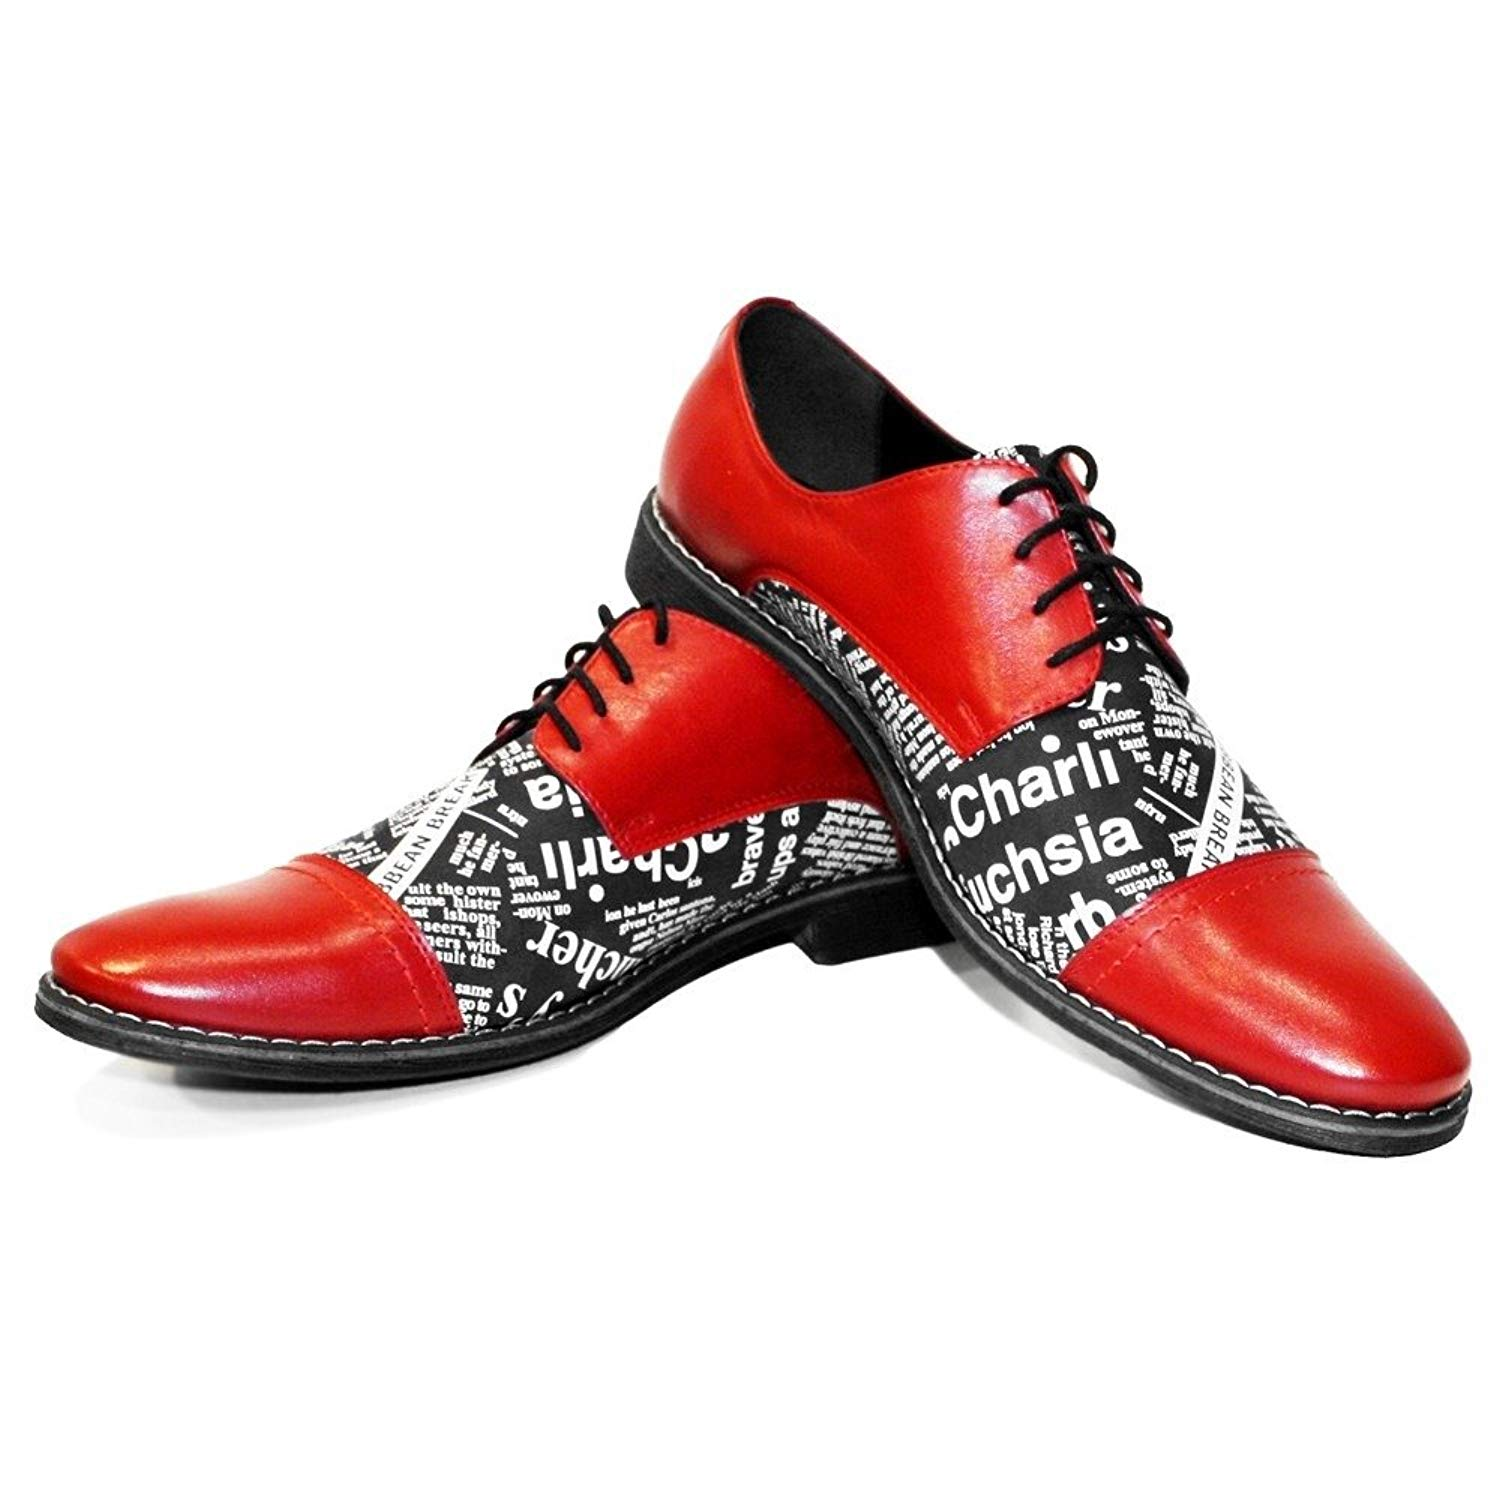 Modello RedPaper - Handmade Italian Mens Red Oxfords Dress Shoes - Cowhide Smooth Leather - Lace-up